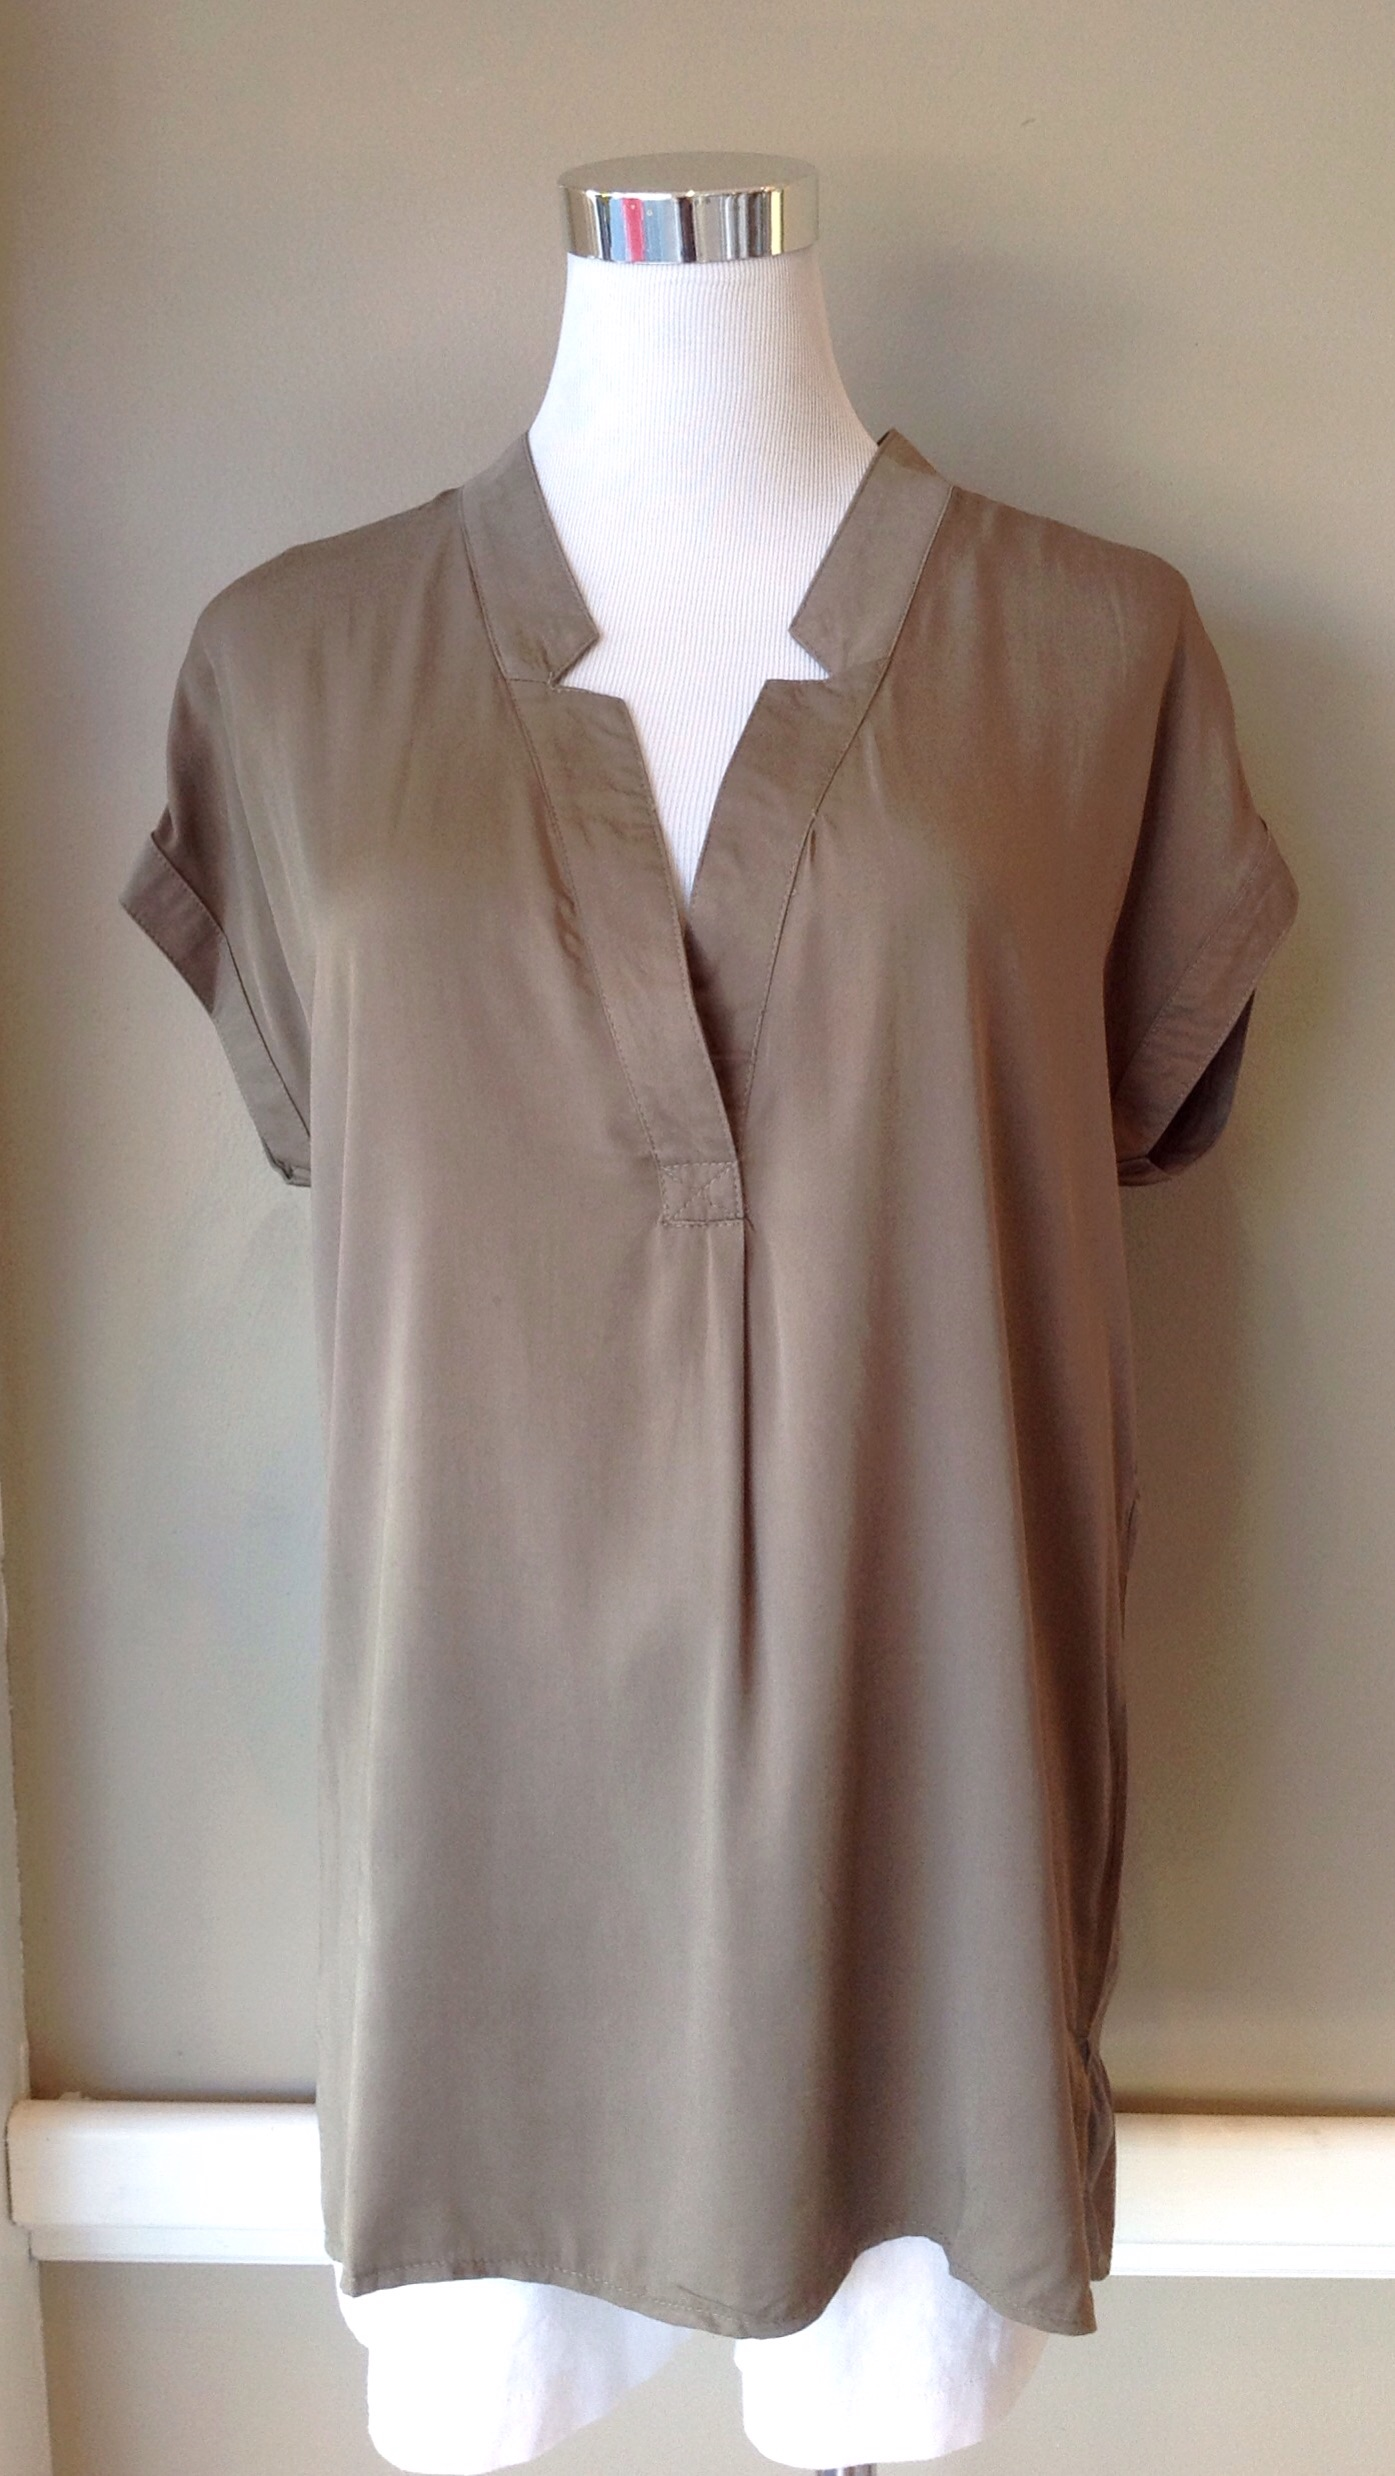 Olive v neck blouse, $34